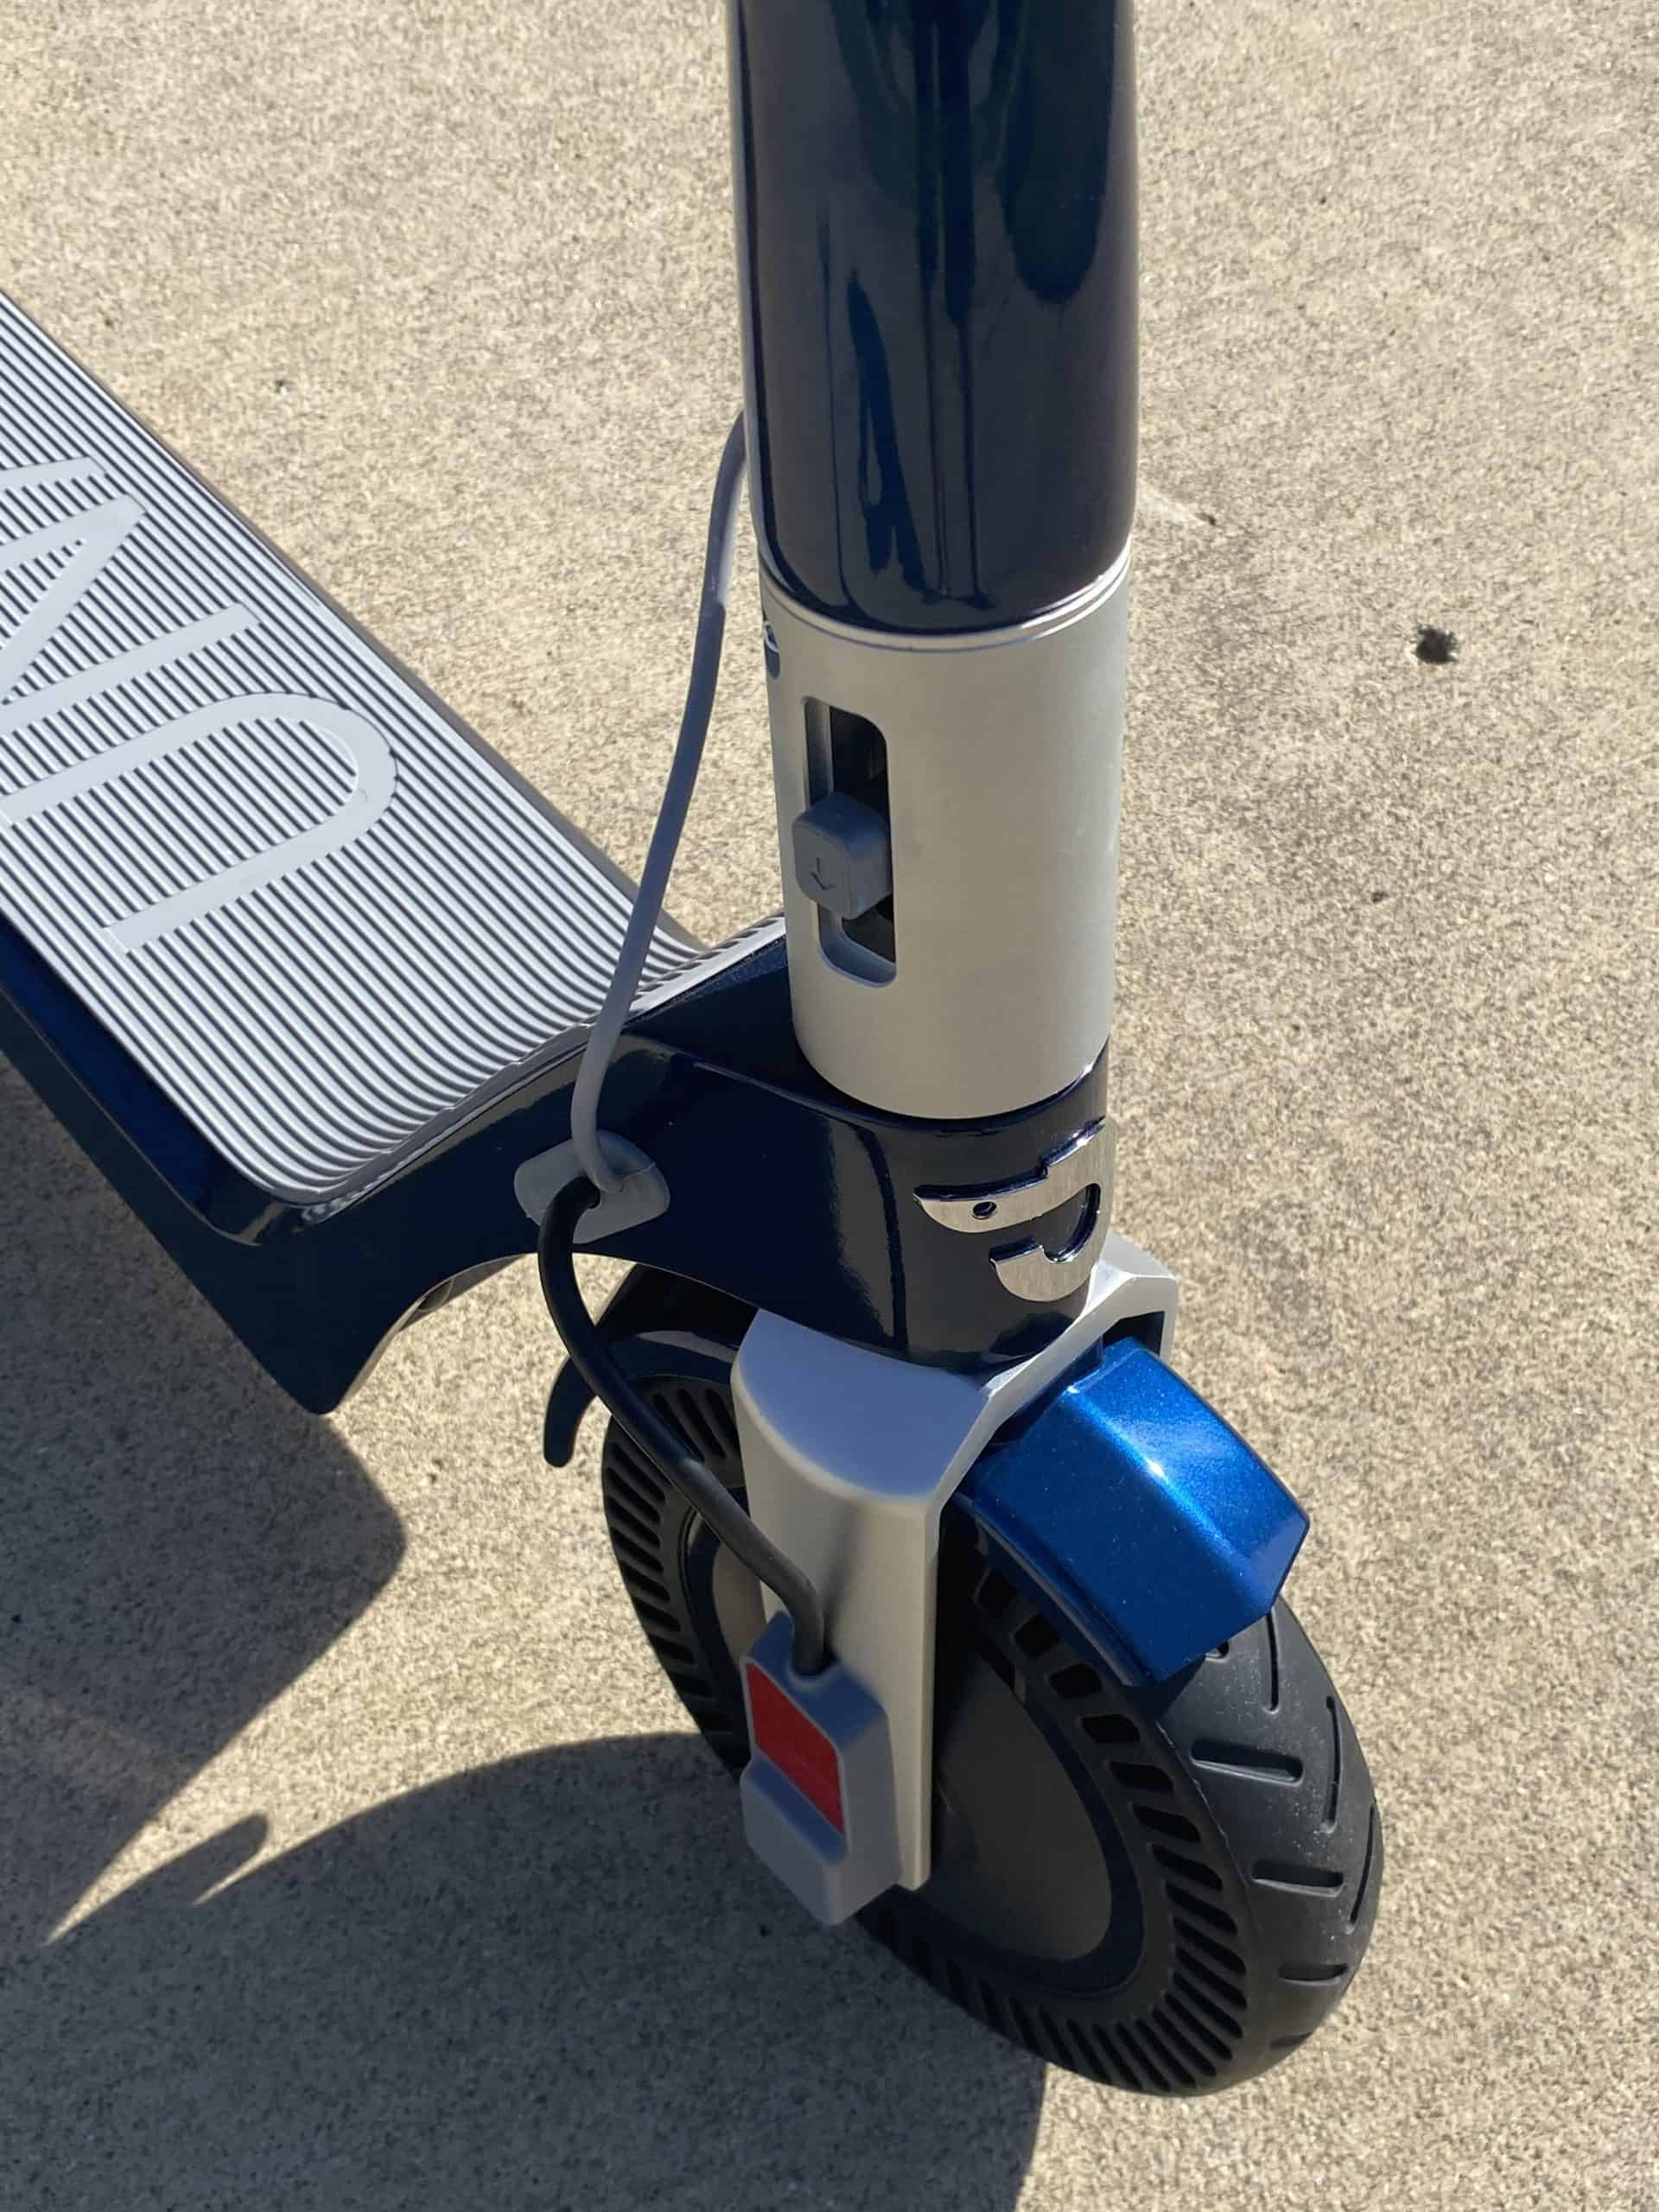 Unagi Electric Scooter Review – The Model One E500 8